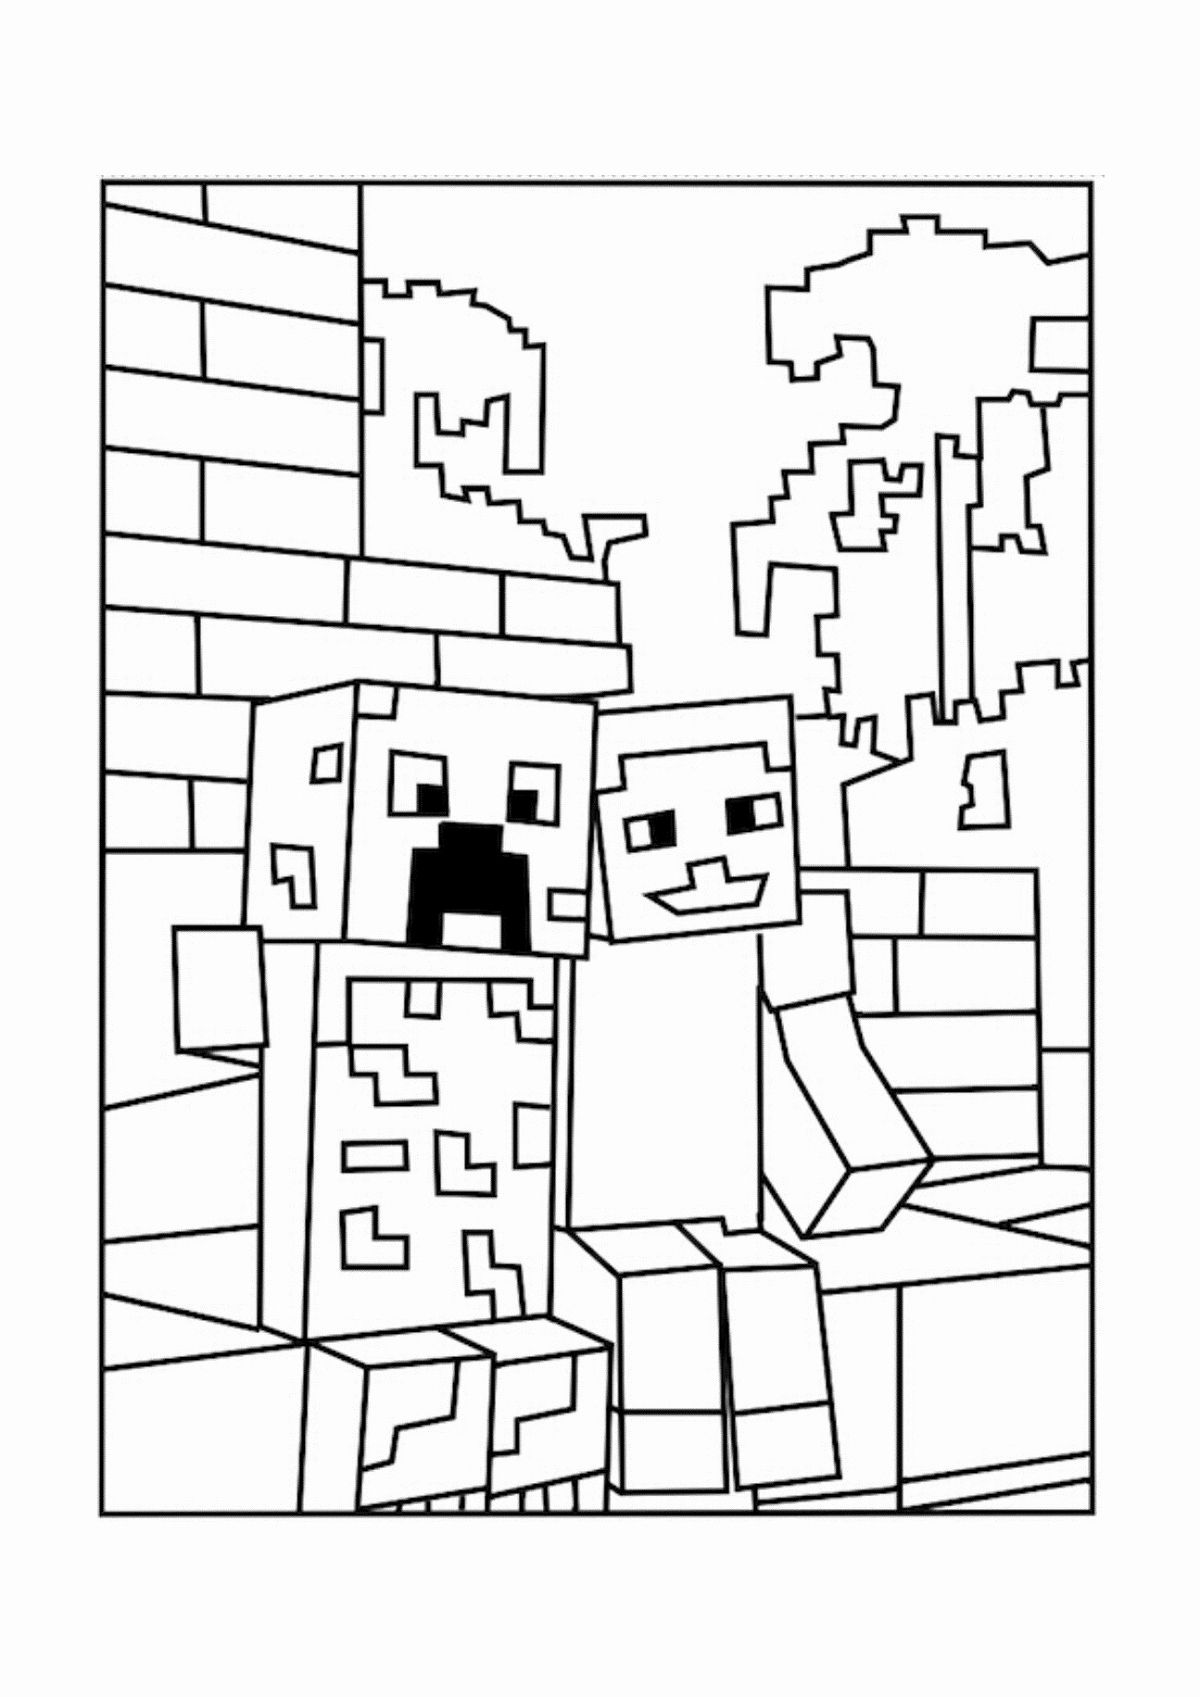 Minecraft Creeper Coloring Page Luxury Minecraft Creeper Coloring Pages Minecraft Coloring Pages Minecraft Printables Printable Coloring Pages